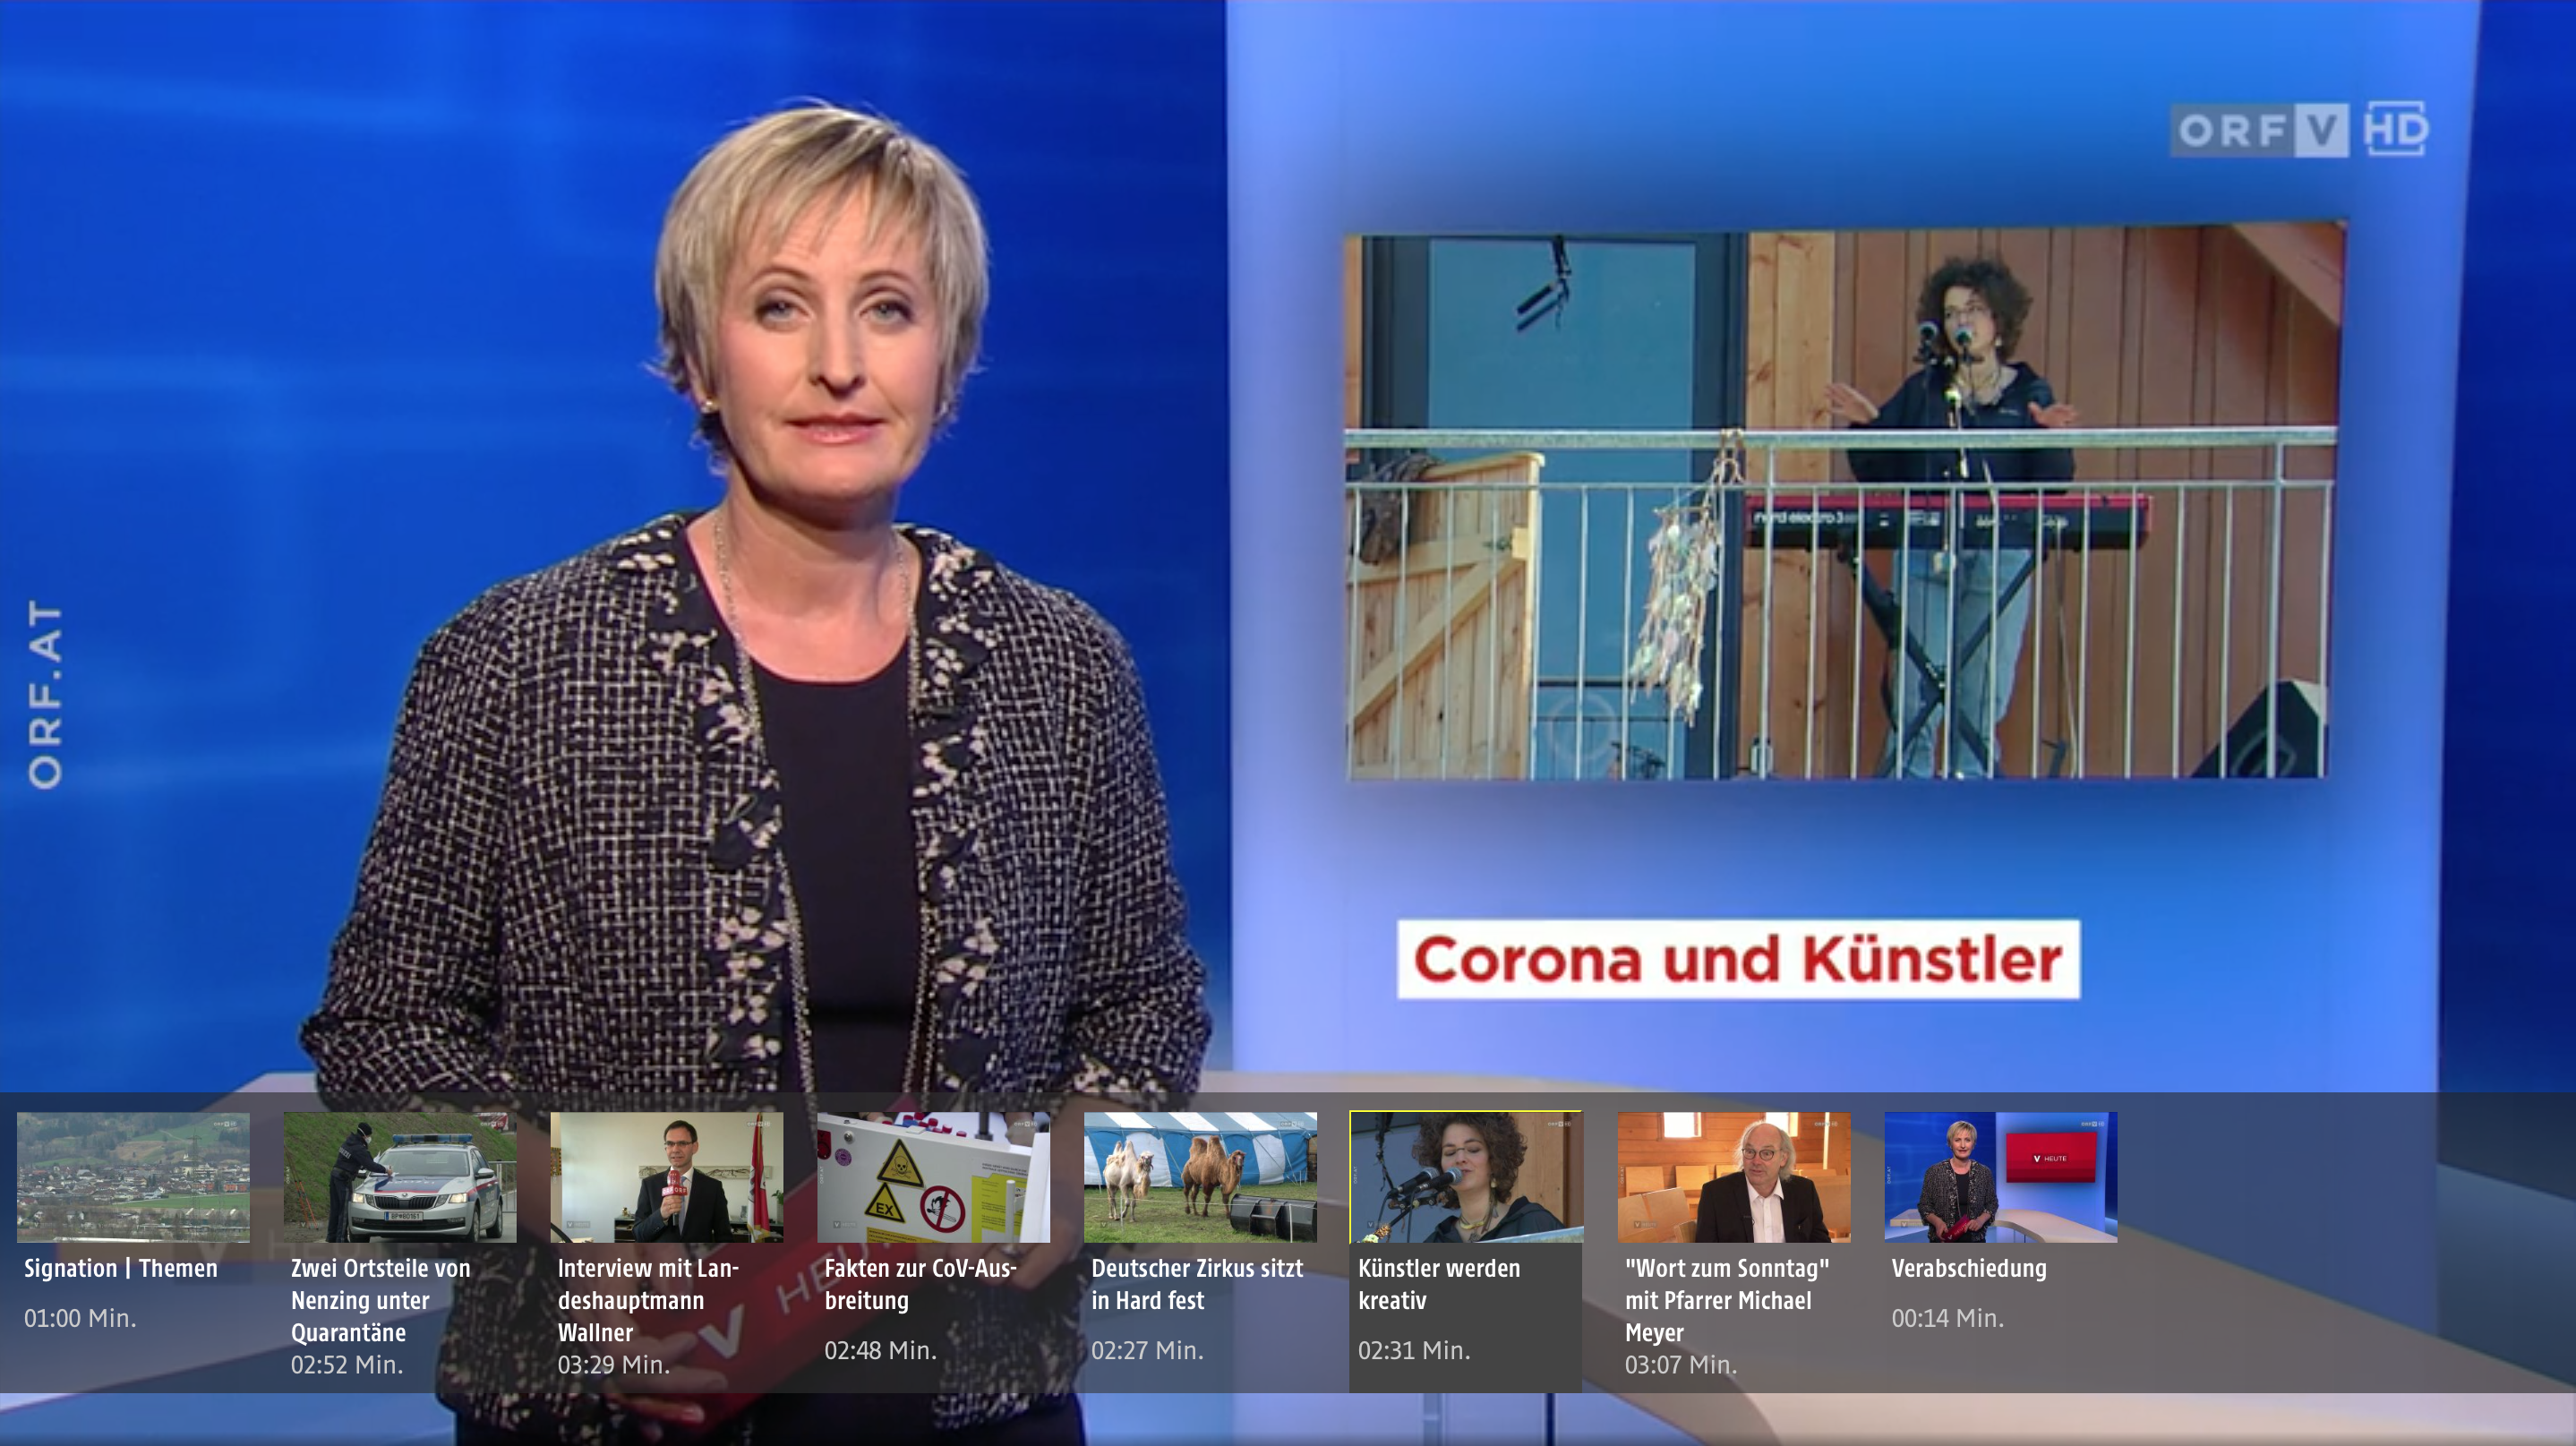 ORF TV